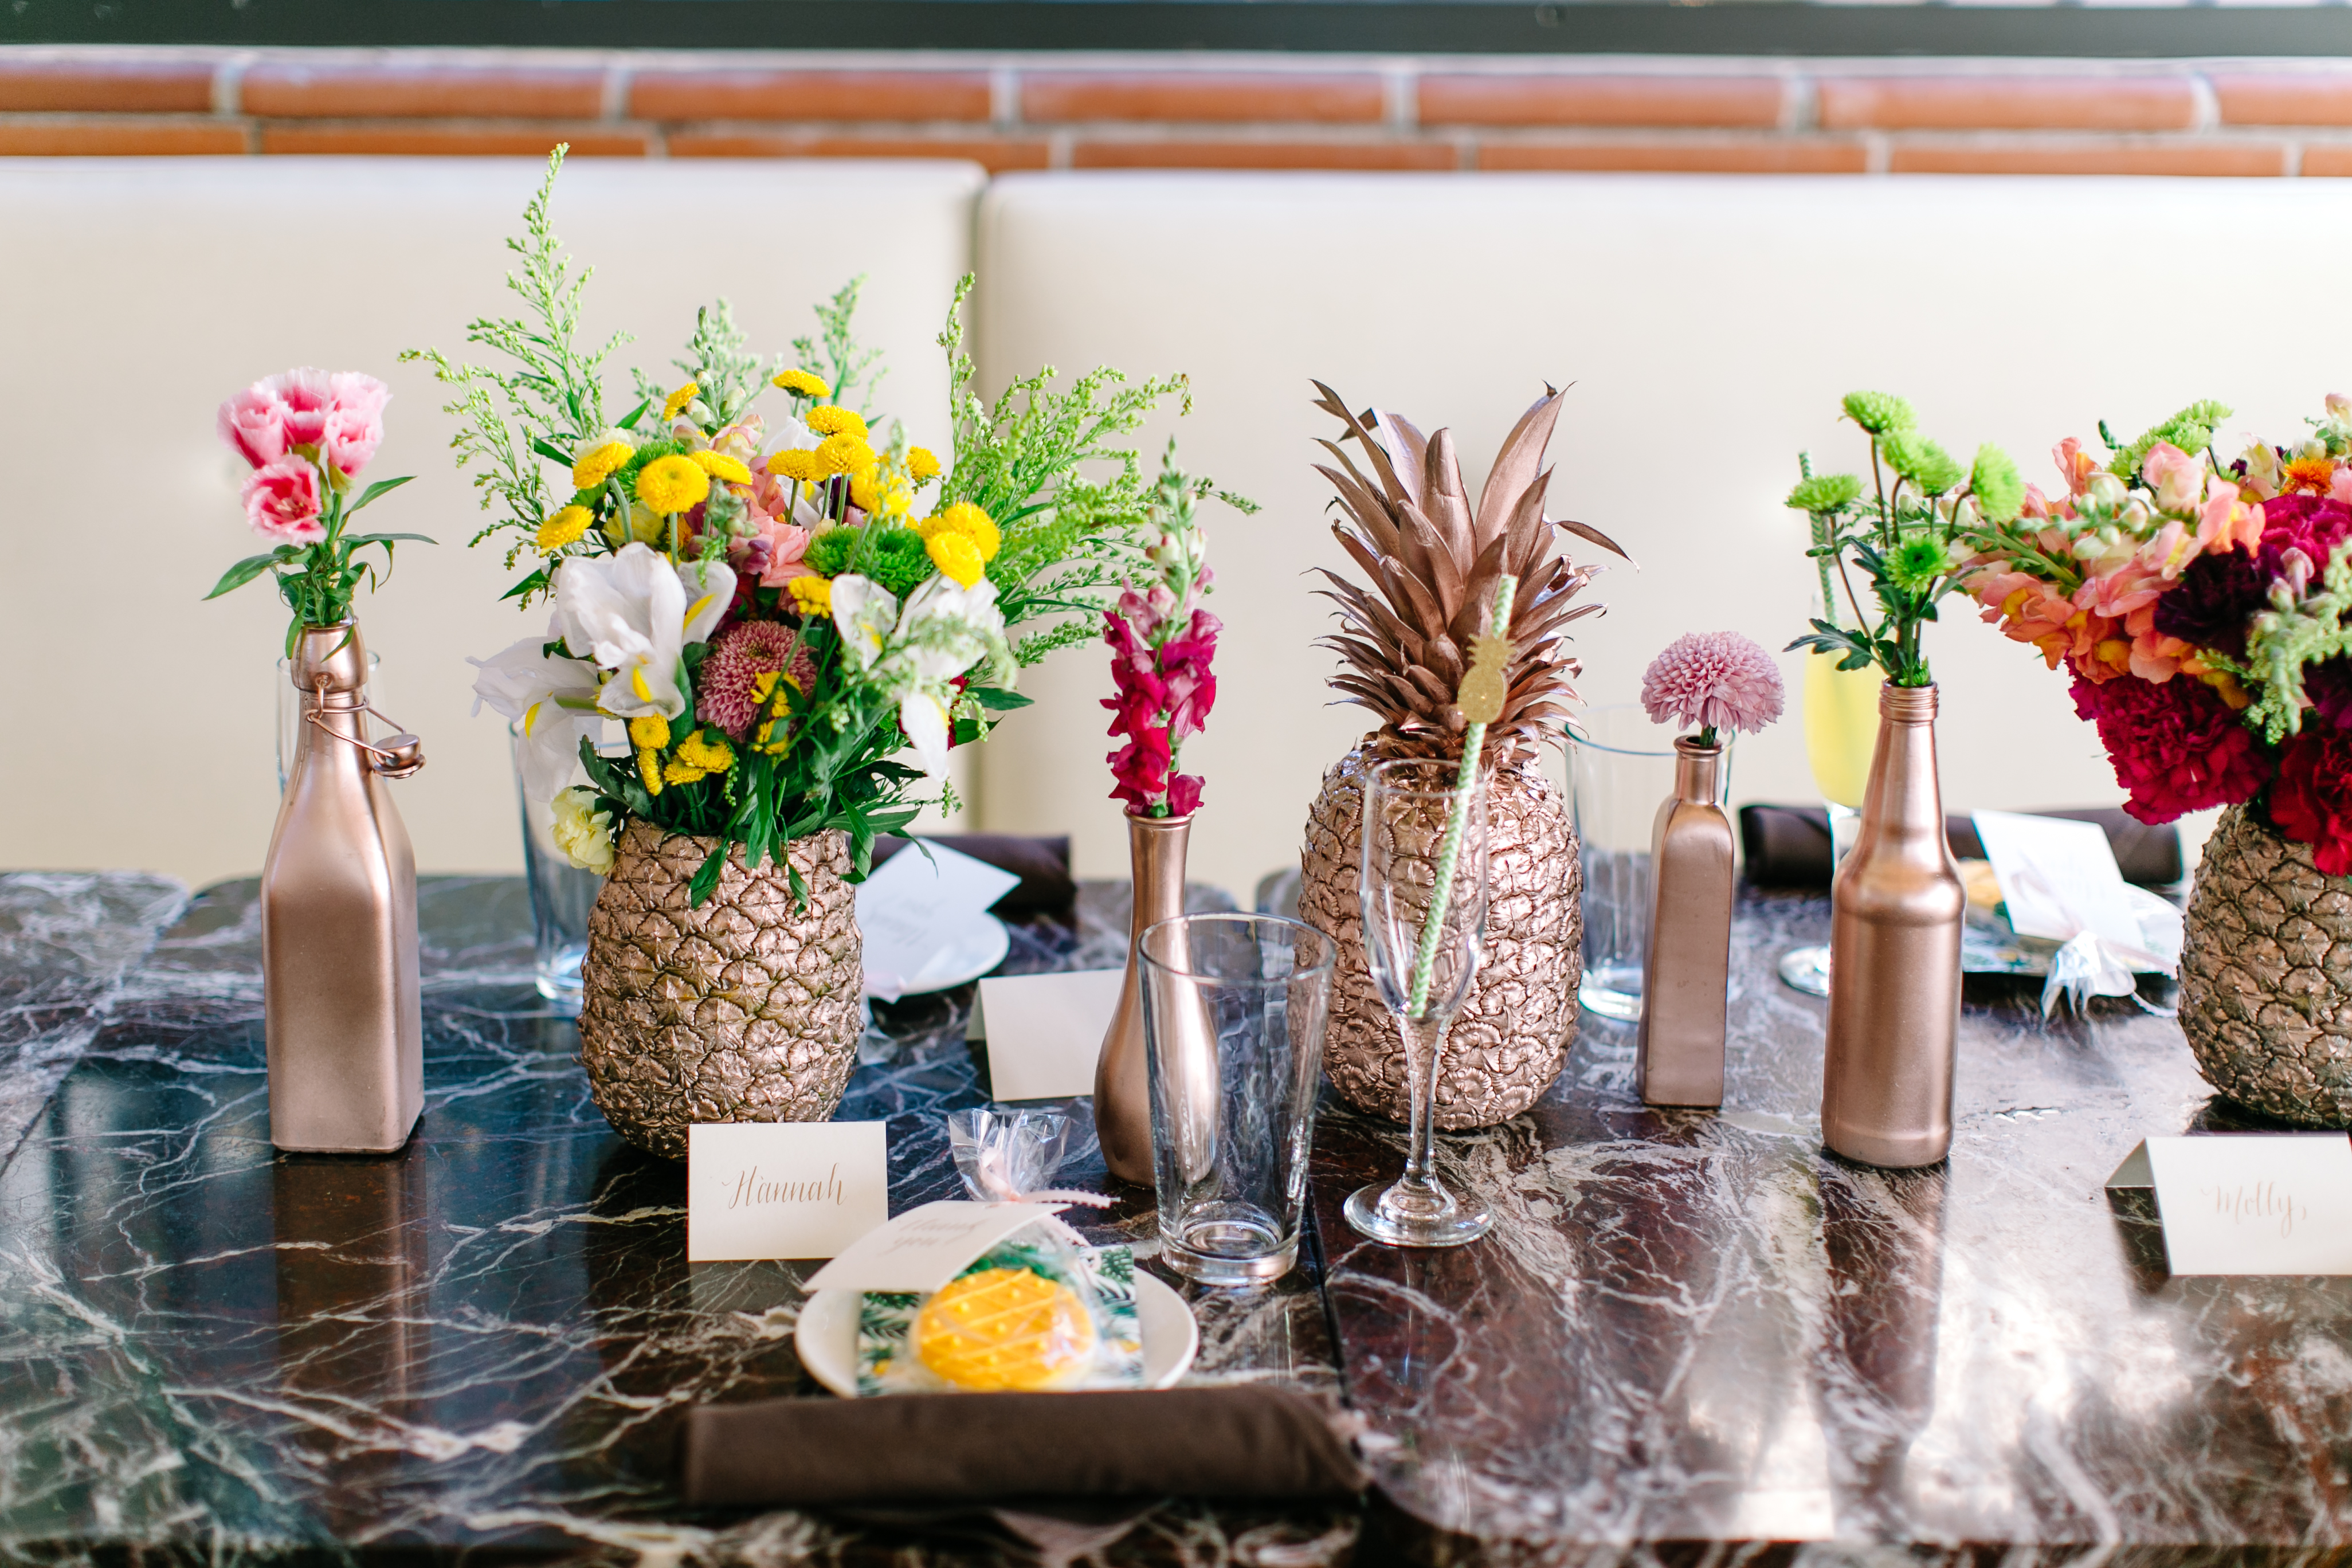 How to create a flower pineapple centerpiece